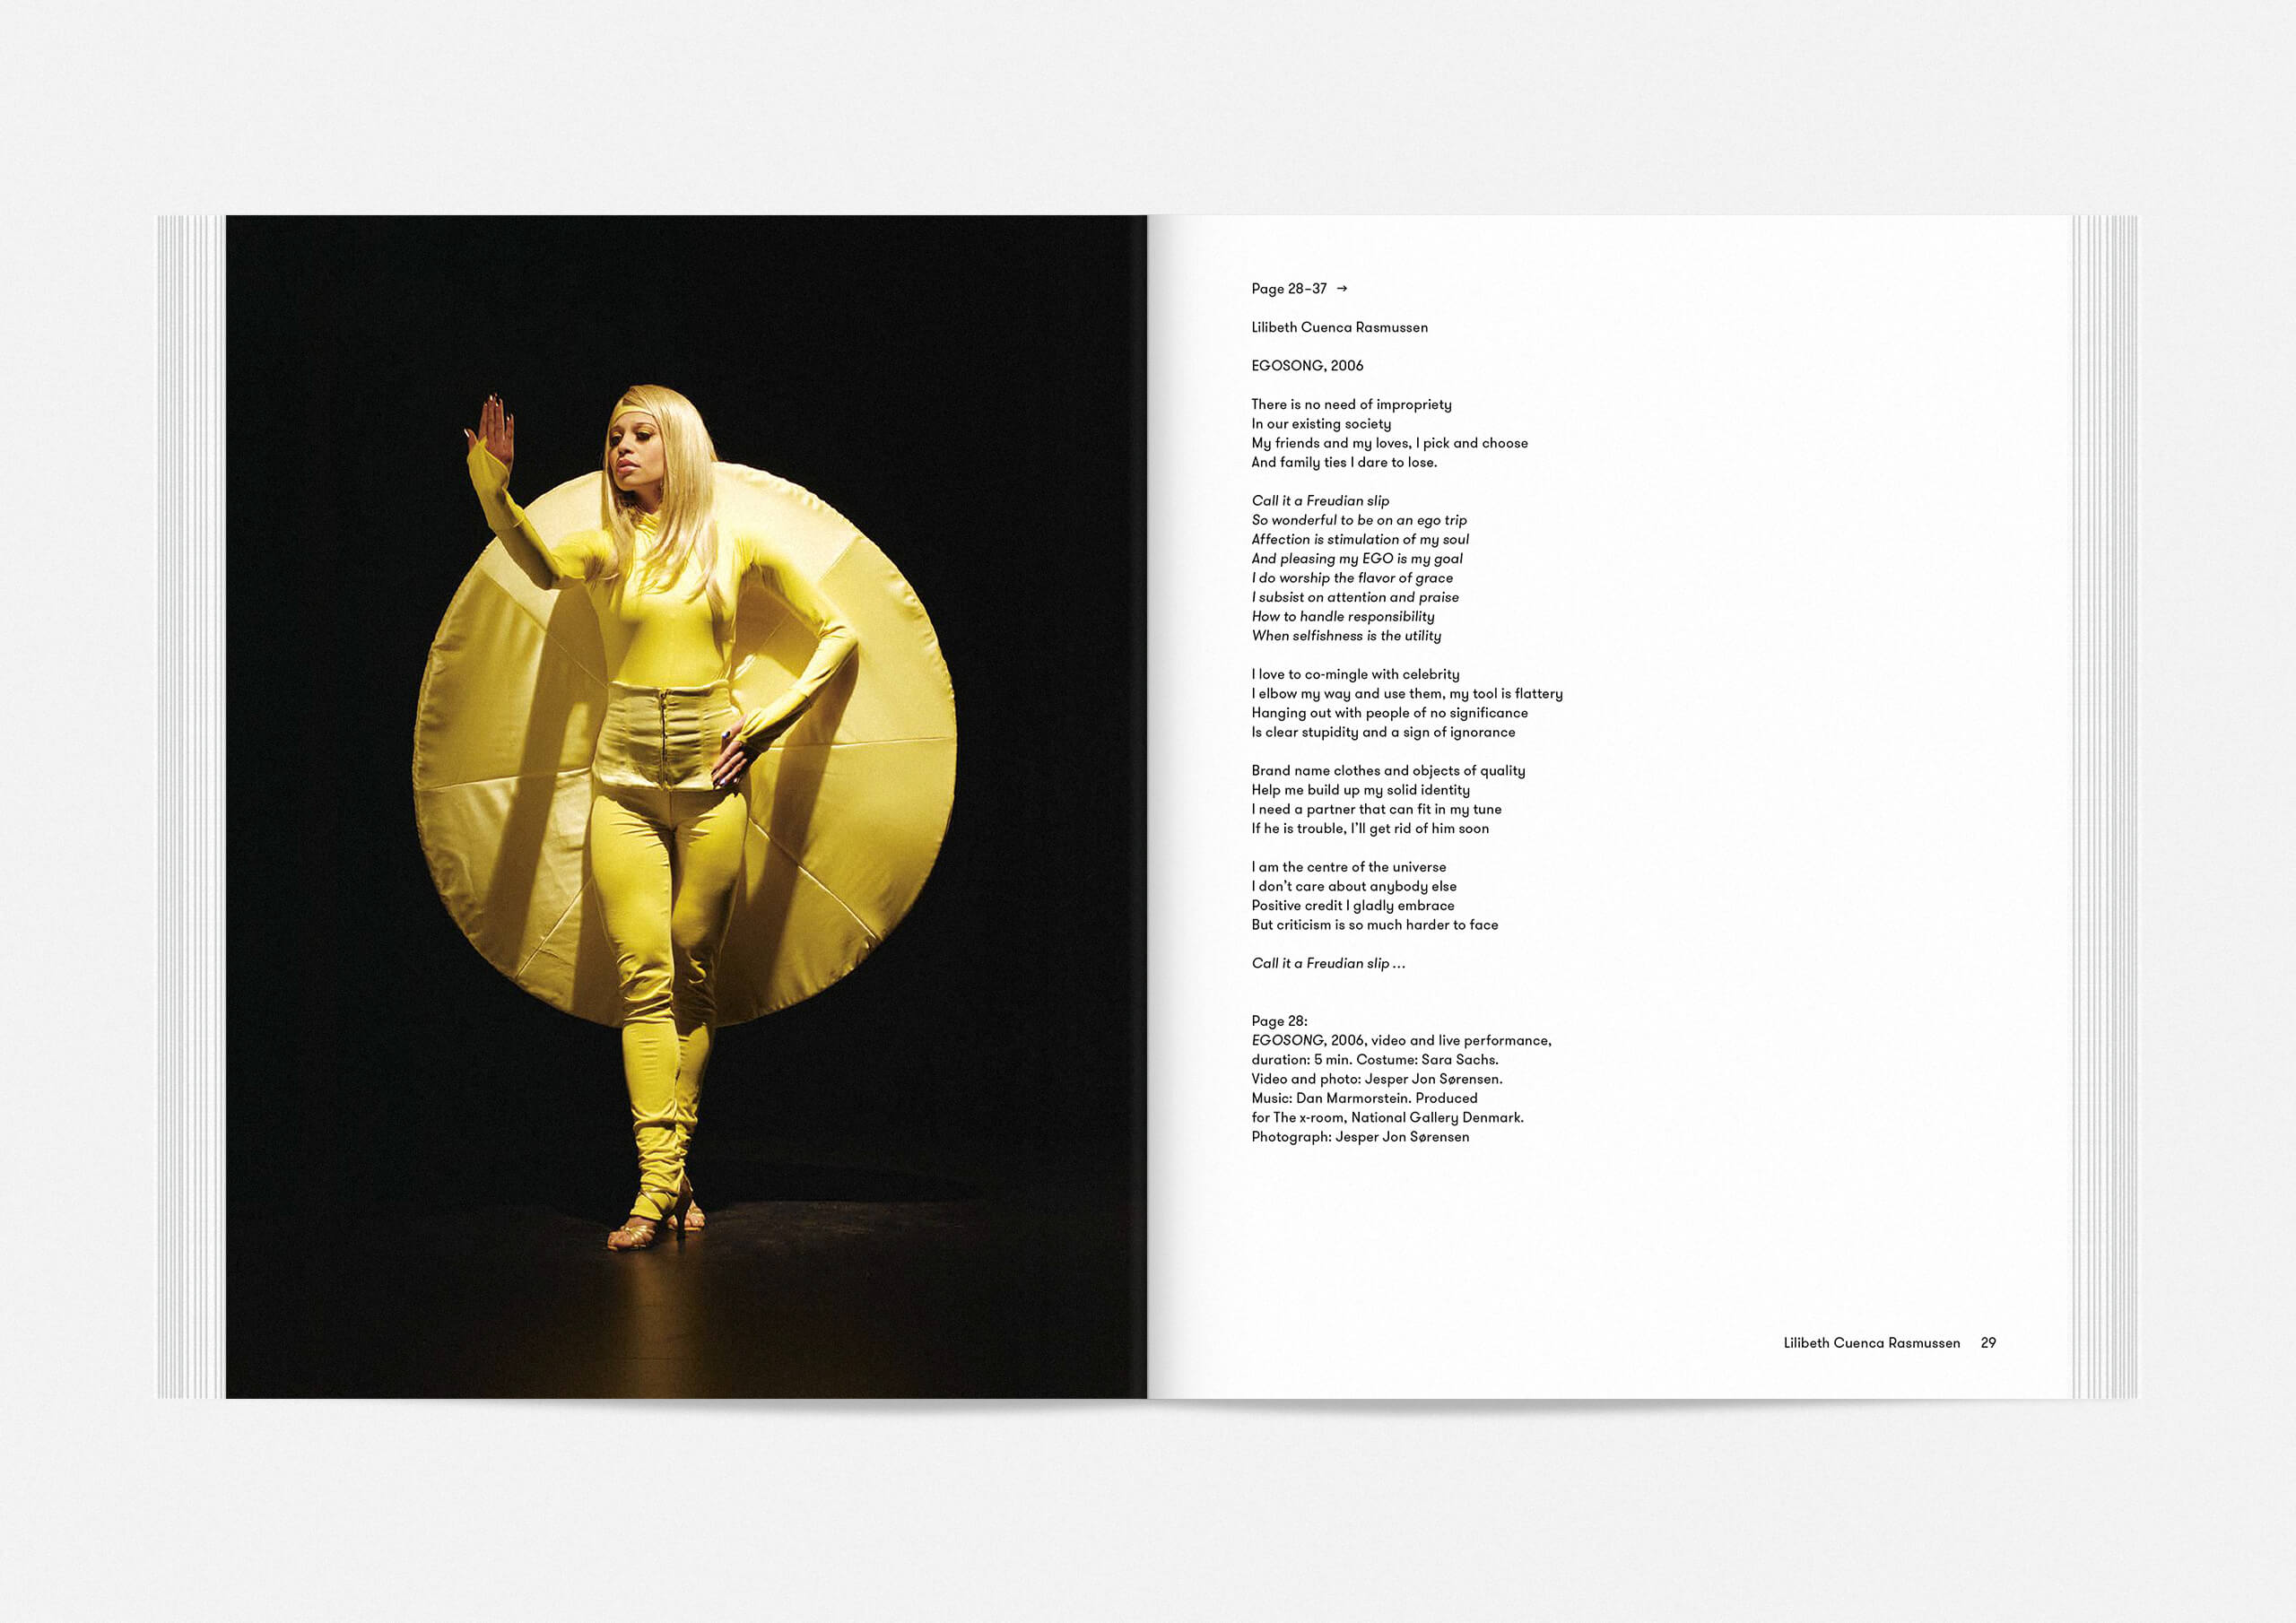 http://neuegestaltung.de/media/pages/clients/protocollum-issue-no-05/b555061fba-1597415141/protocollum-5-page-2829-ng.jpg